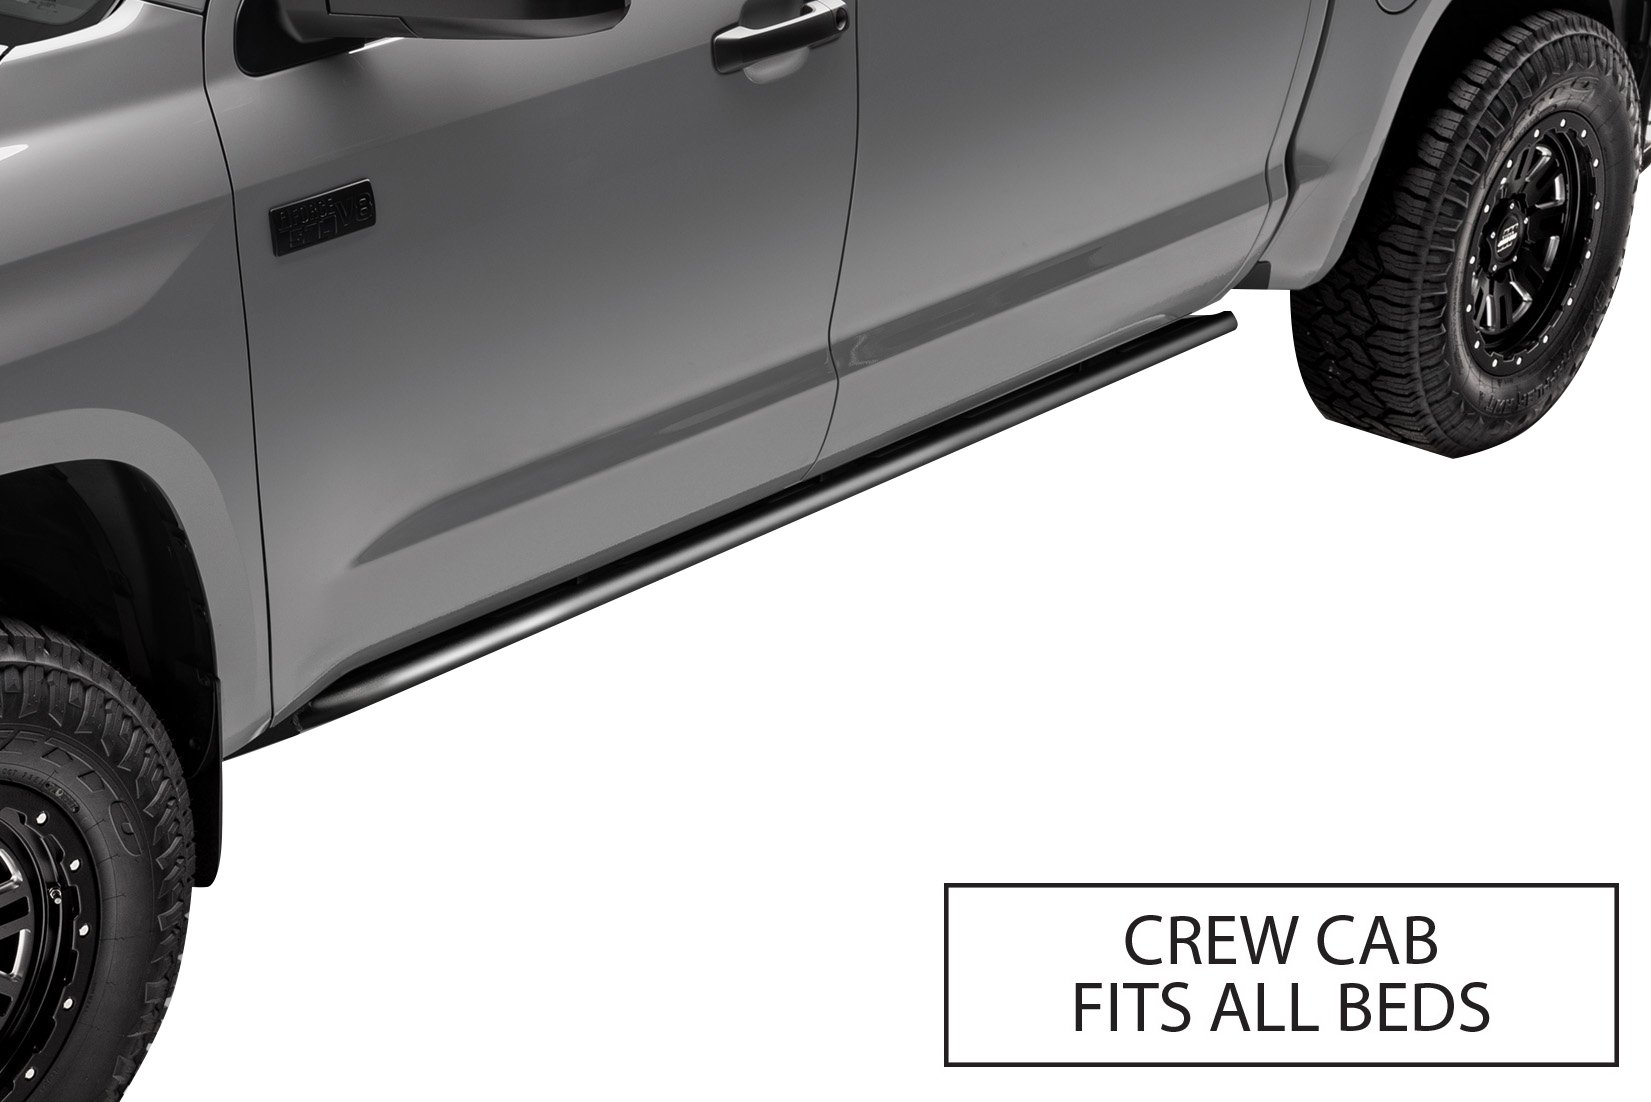 n-FAB RKR Rails, Textured Black, Cab Length | C144RKRCC | fits 14-19 Chevy-GMC 1500, Crew Cab, All Bed Sizes